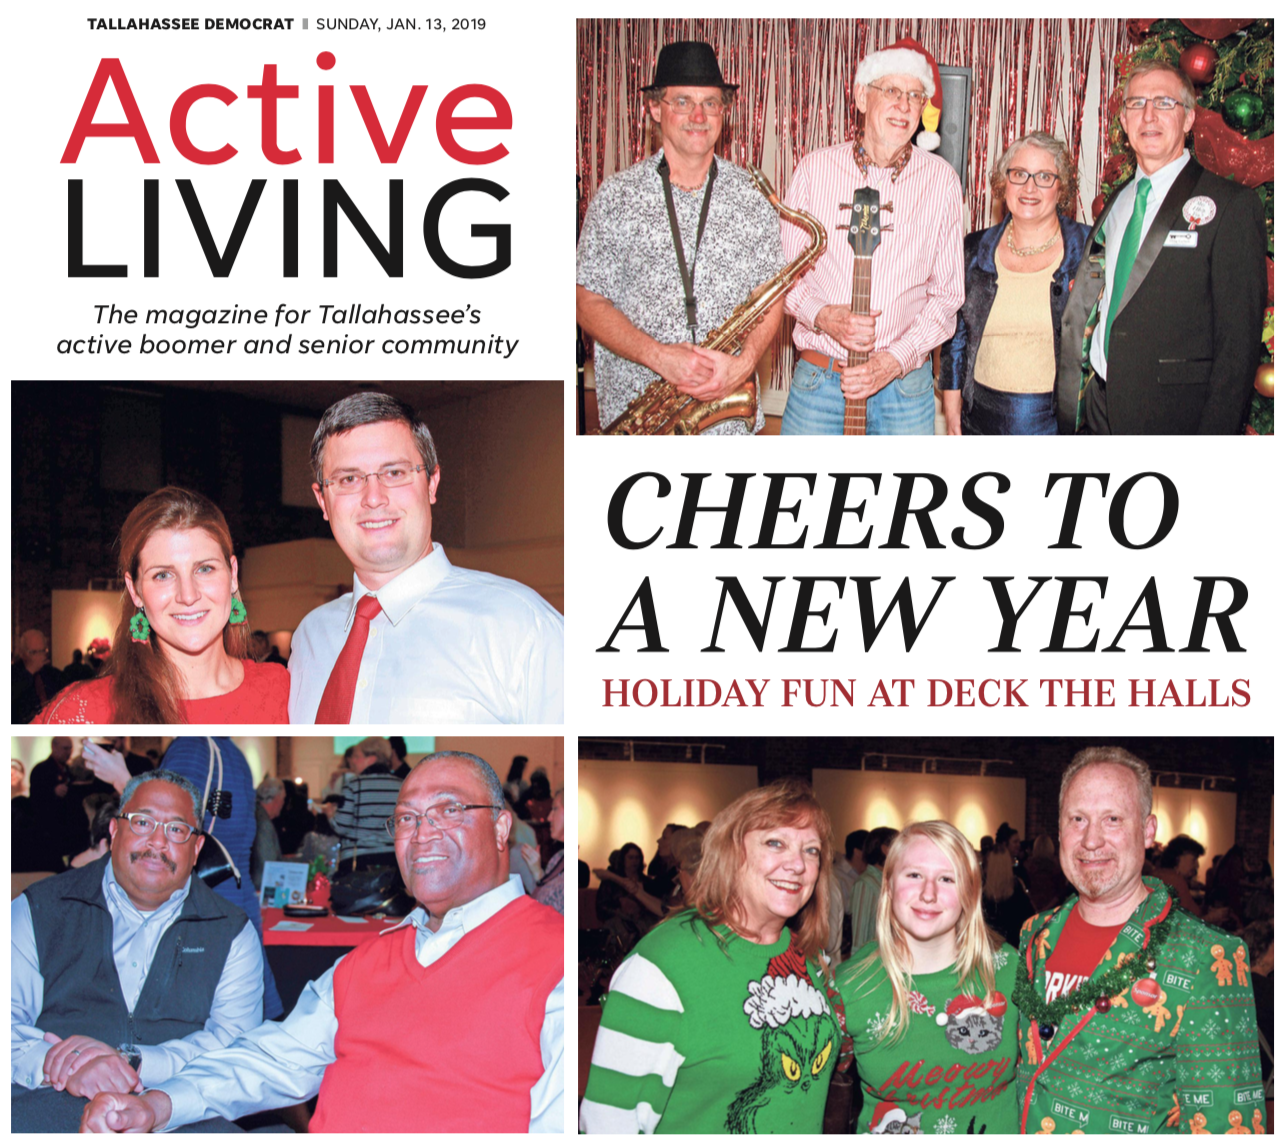 Download the Active Living magazine.